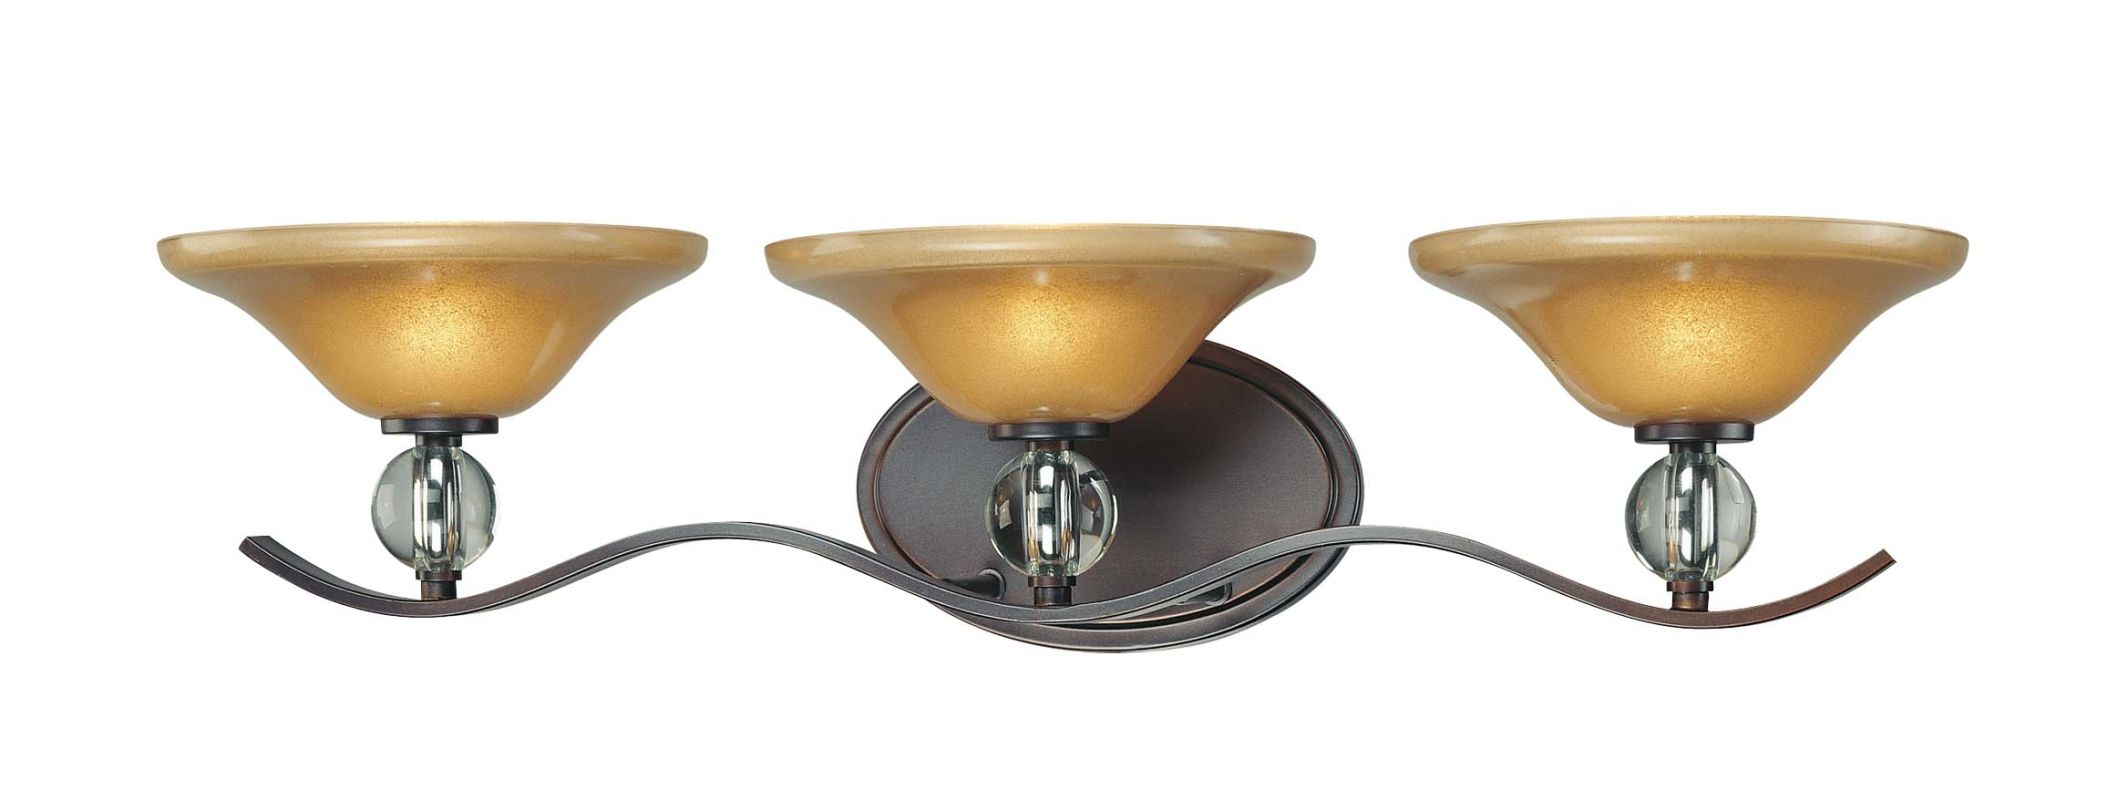 Can Vanity Lights Be Installed Upside Down : Minka Lavery 6483-167B Deep Lathan Bronze 3 Light Bathroom Vanity Light from the Grahmton ...